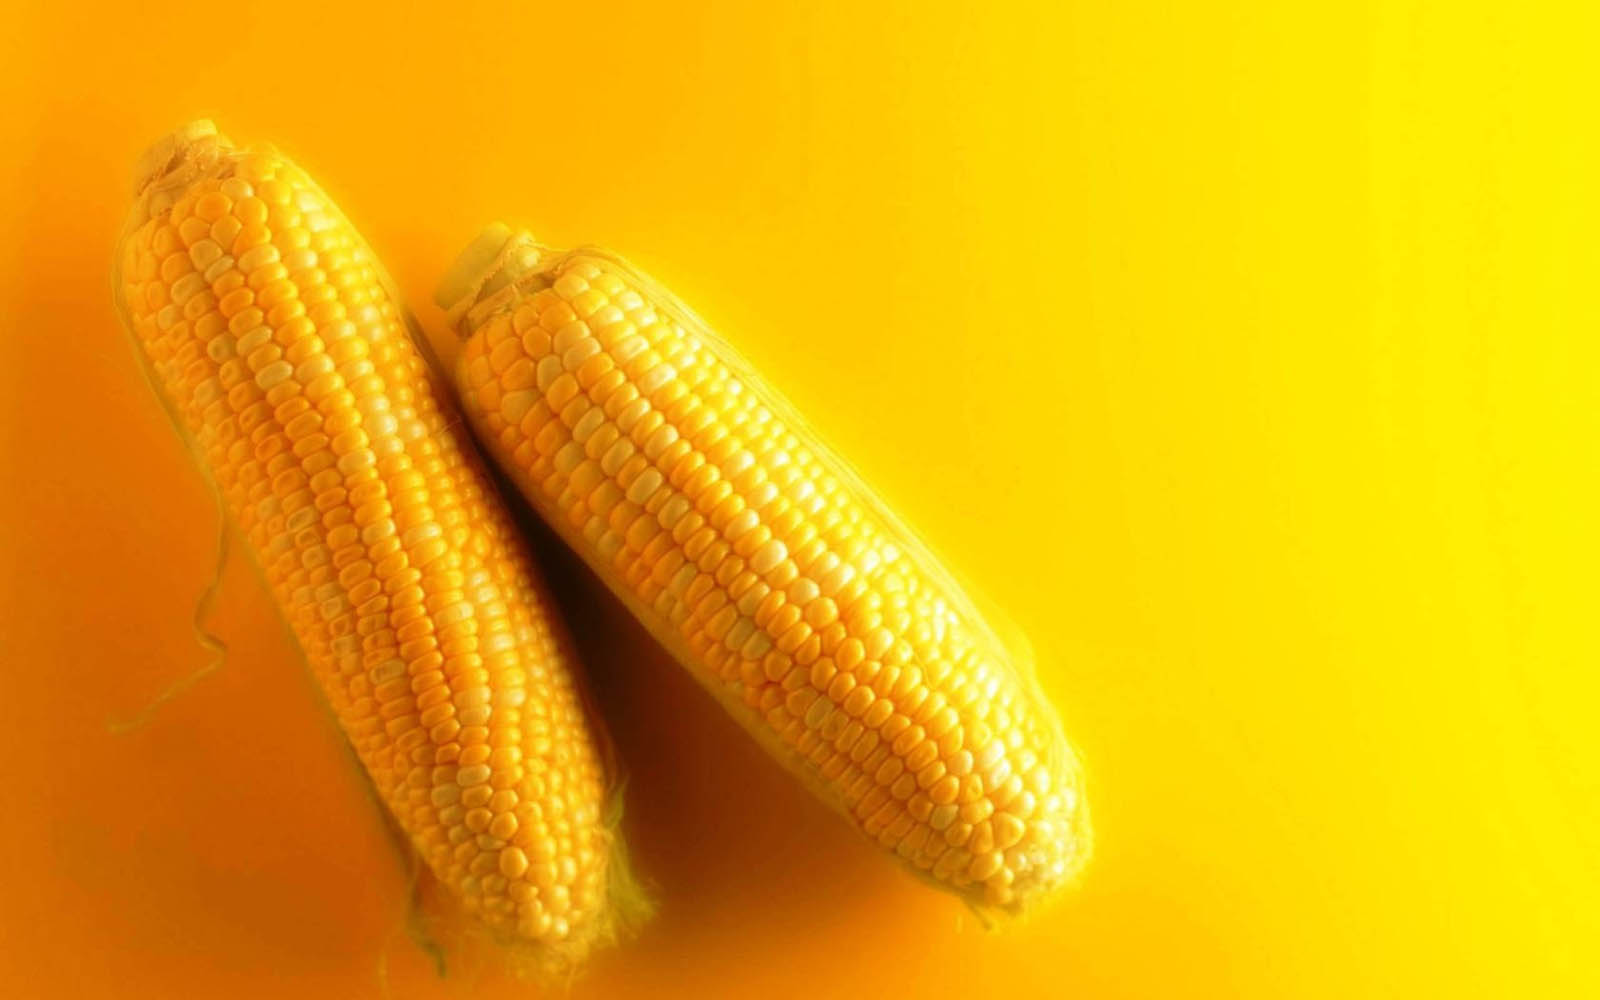 wallpapers: Fresh Corn